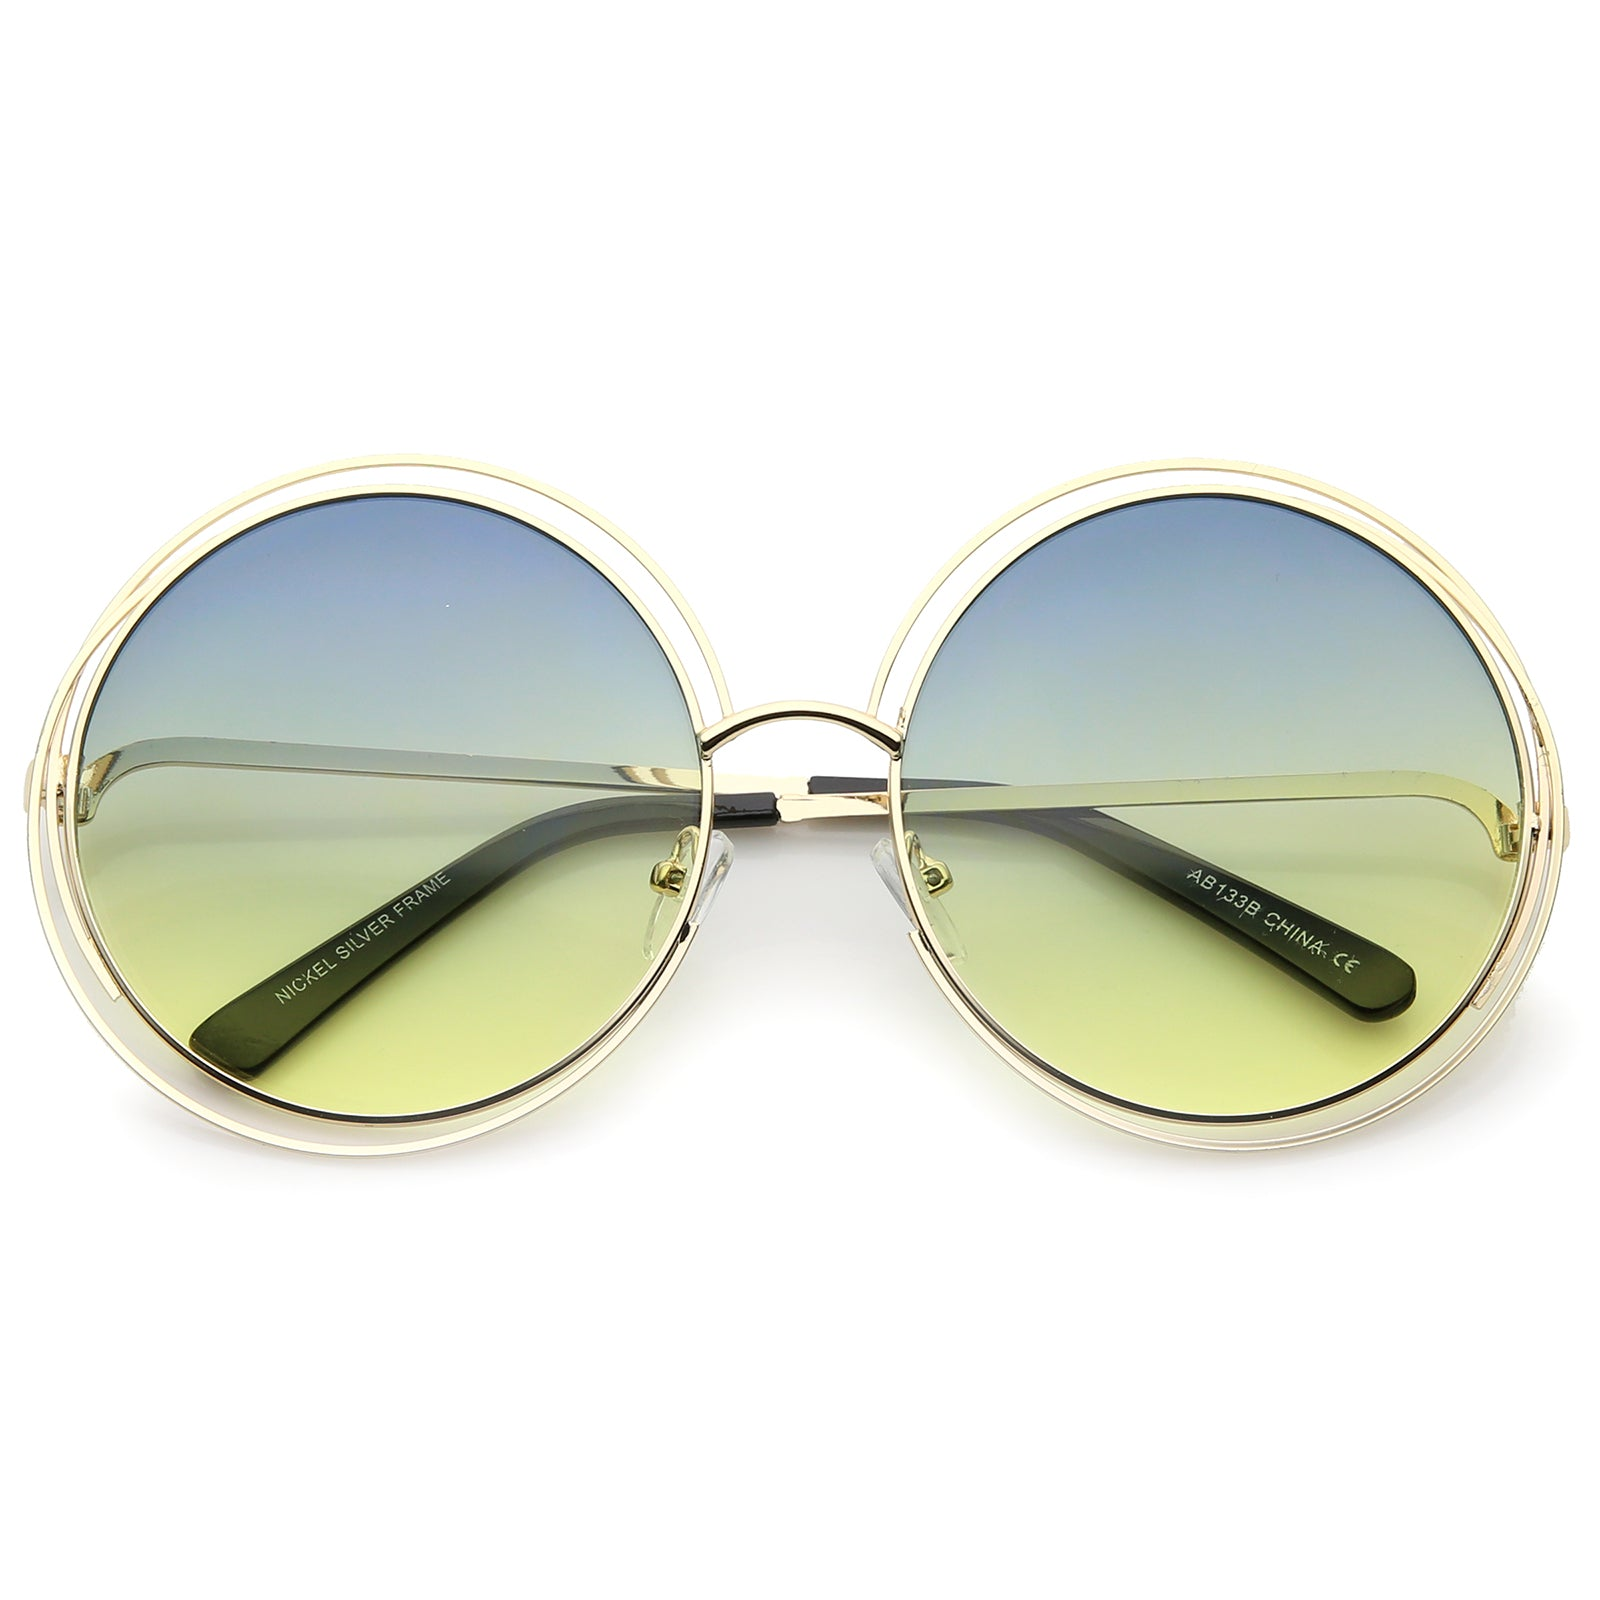 Oversize Wire Frame Gradient Two-Tone Color Lens Round Sunglasses 61mm - sunglass.la - 17